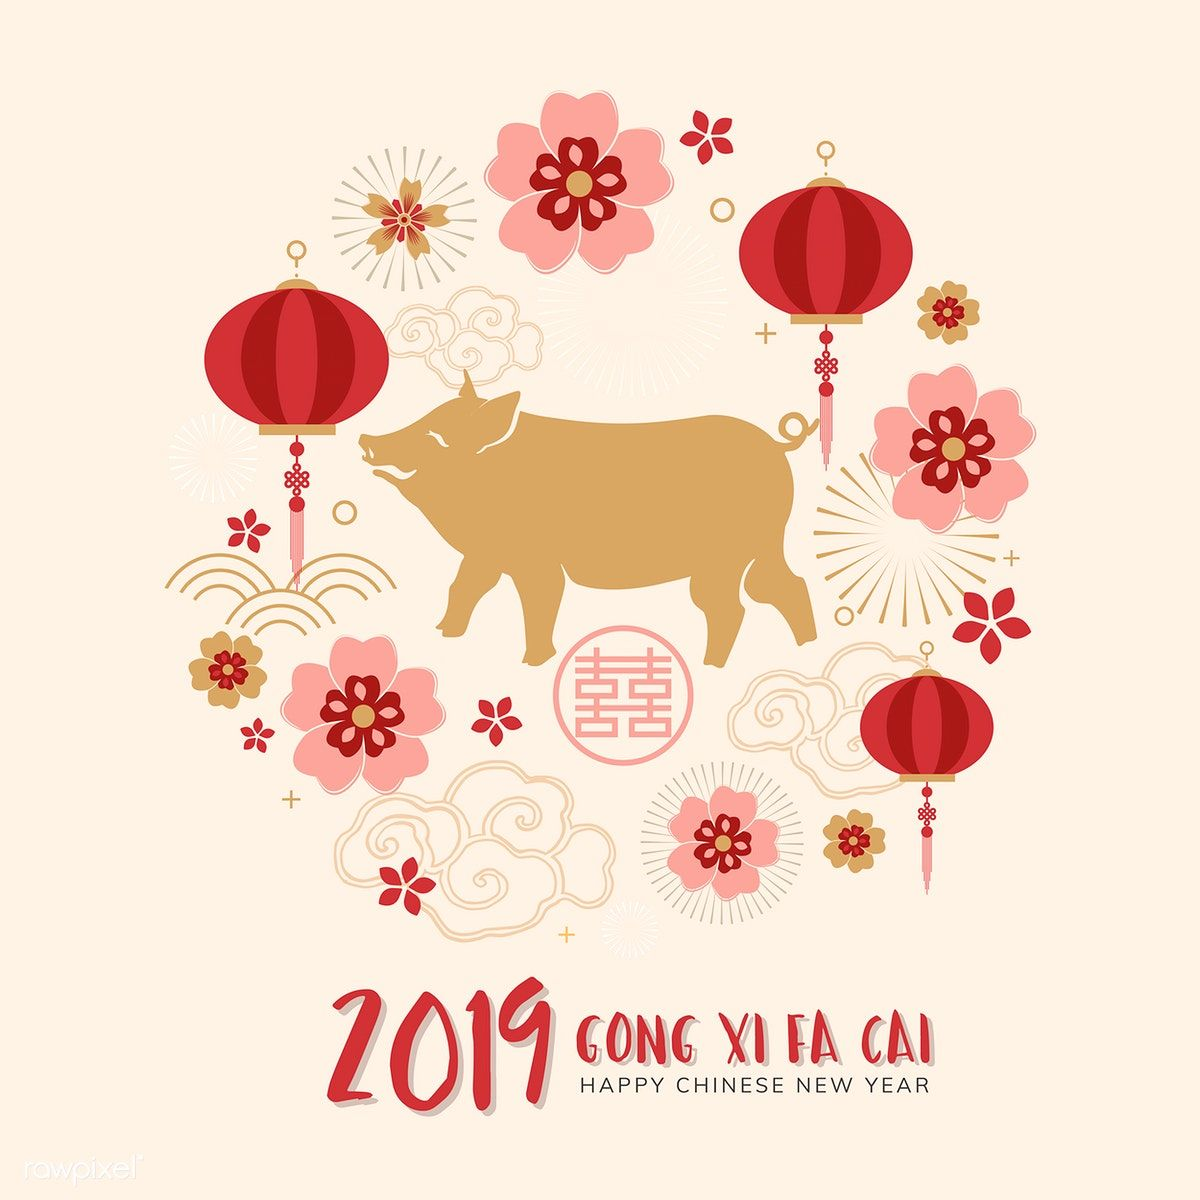 Year of the pig Chinese new year 2019 greeting background